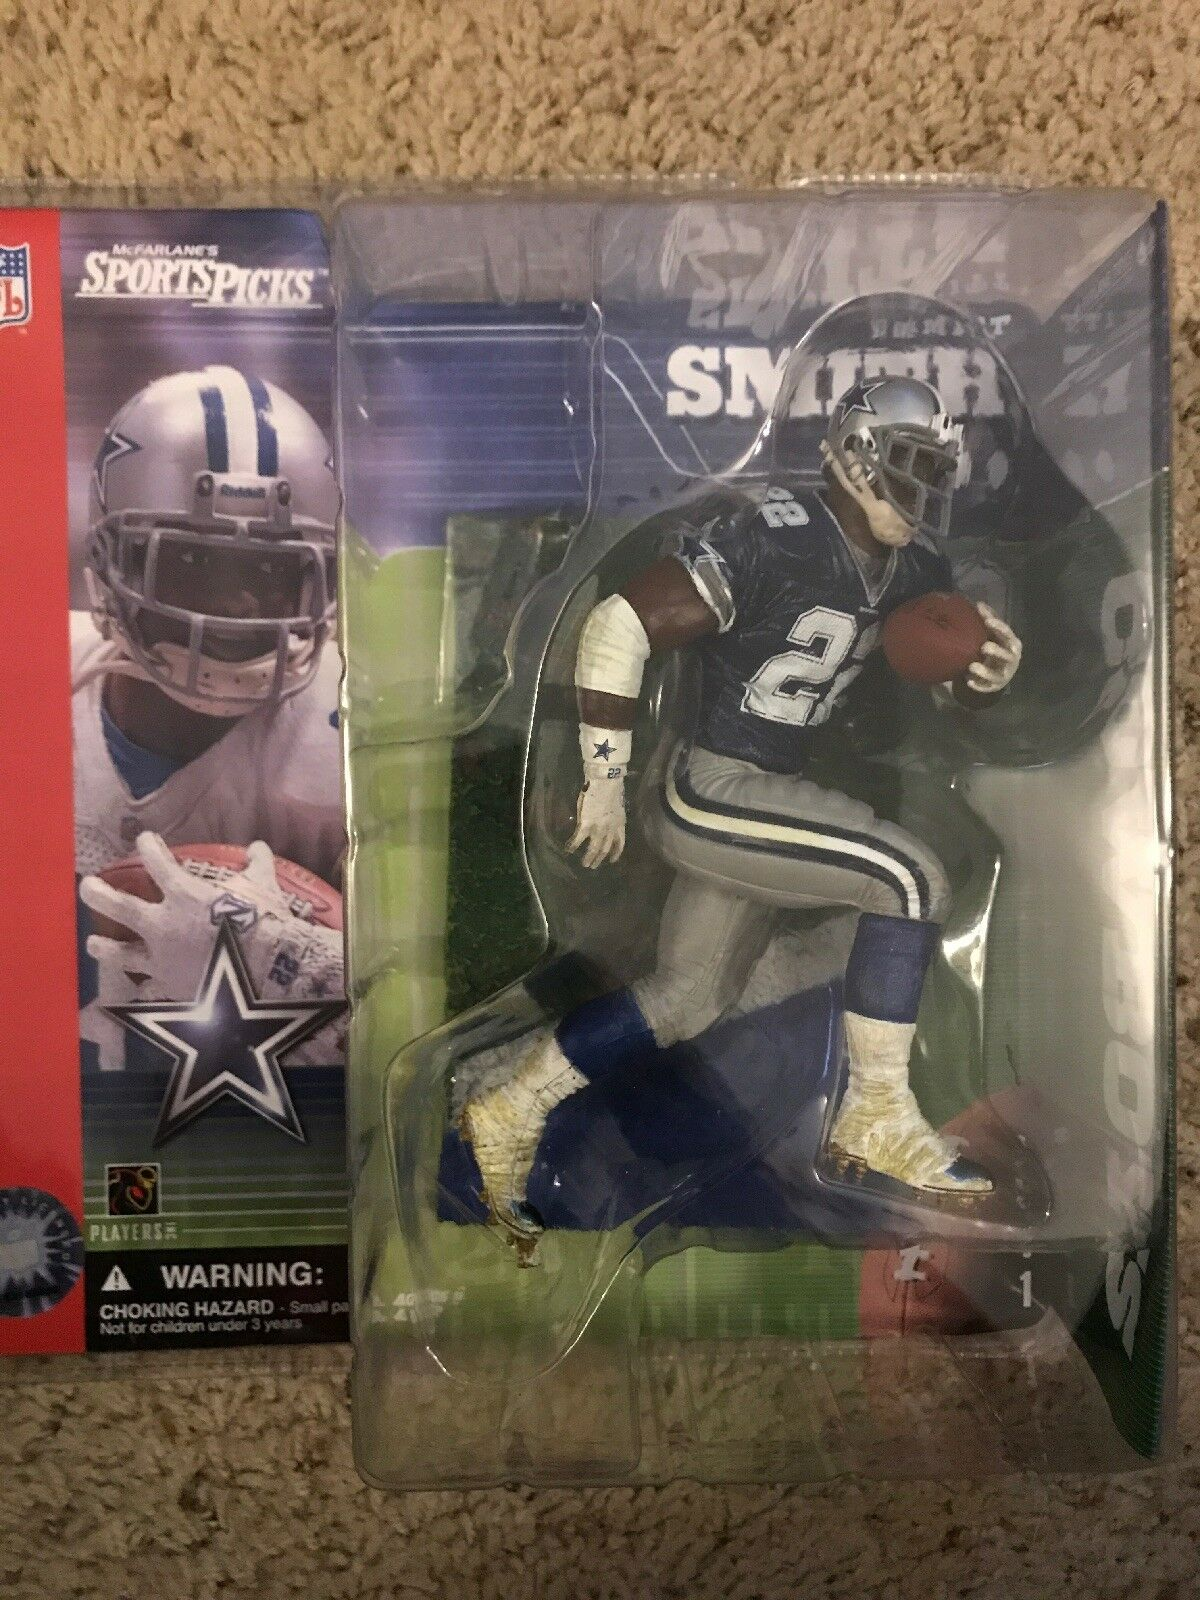 MCFARLANE NFL EMMITT SMITH CHASE VARIANT blueE jERSEY WITH STARS DALLAS COWBOYS